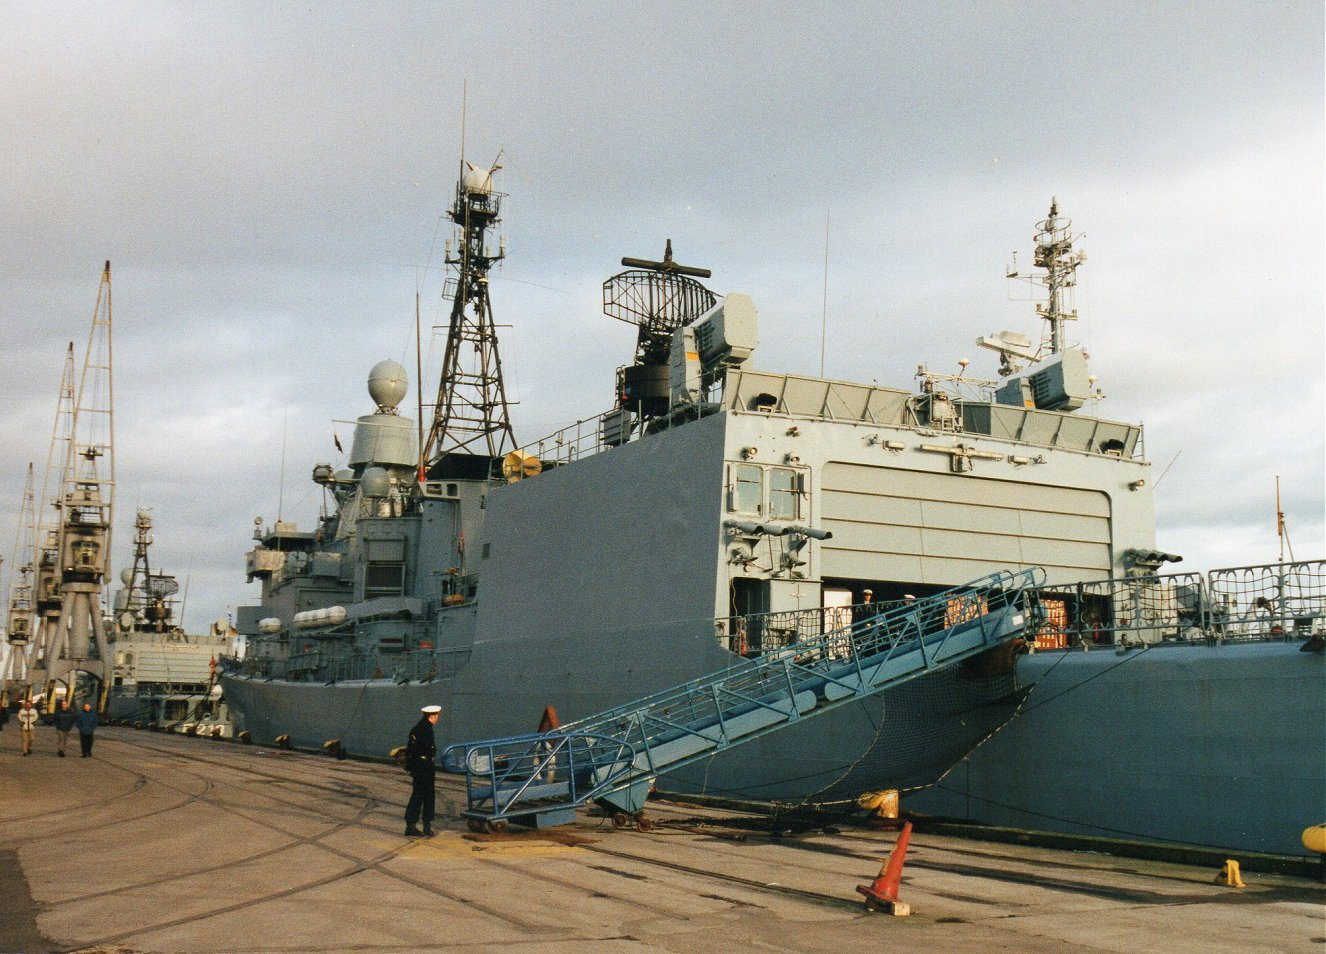 French destroyer De Grasse with Falklands veteran Type 42 HMS Exeter. 25.2.01.